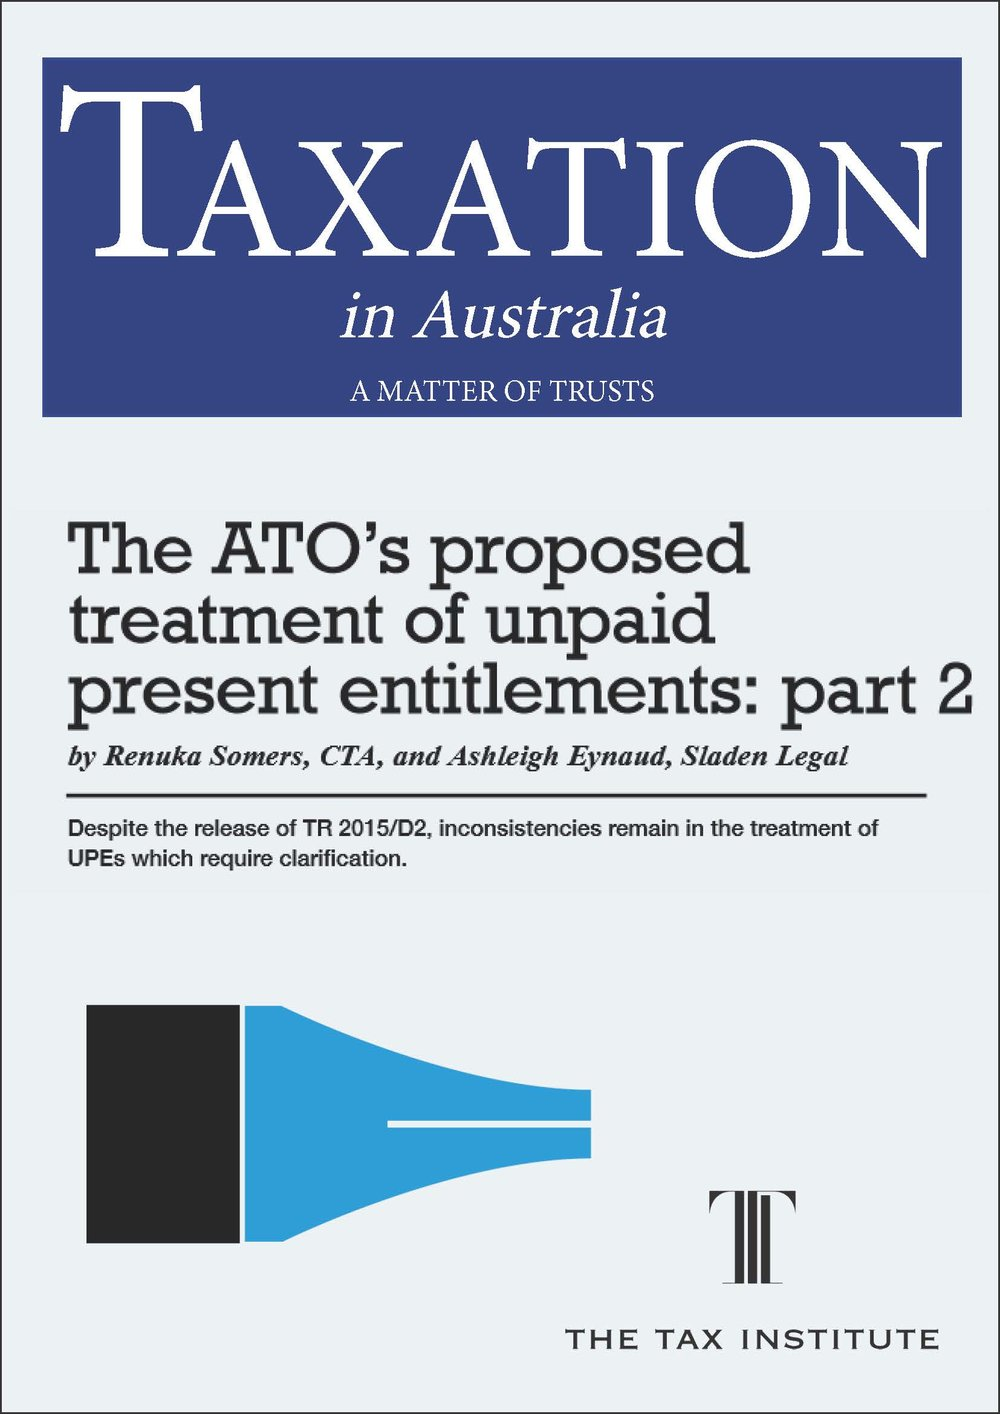 The ATO's proposed treatment of unpaid present entitlements: part 2 03 December 2015